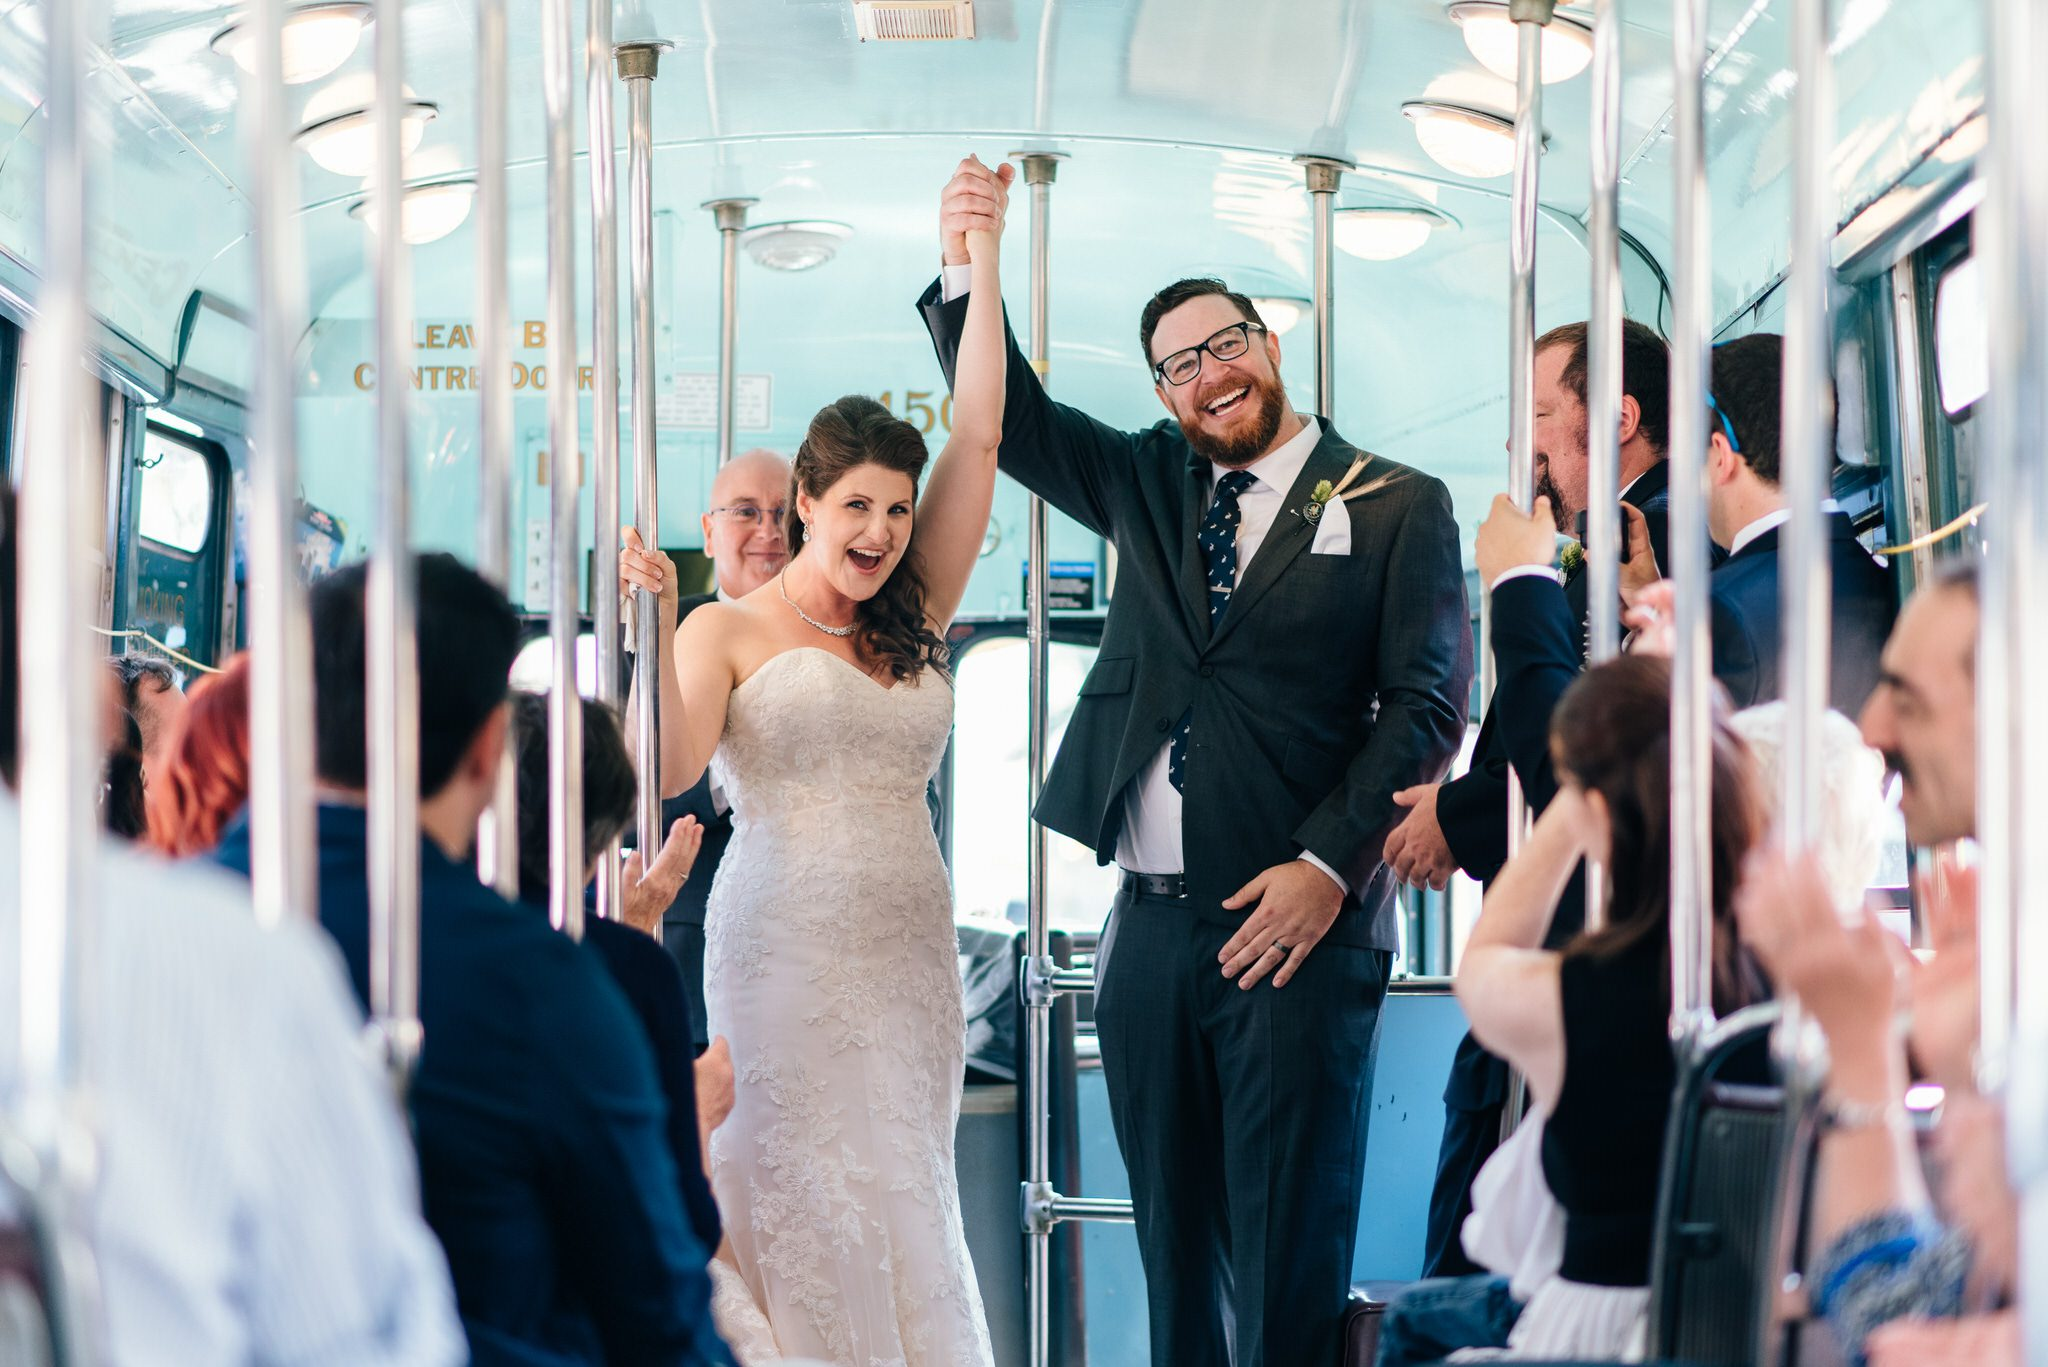 The bride and groom hold their hands in the air in celebration after their Vintage Toronto Streetcar Wedding Ceremony